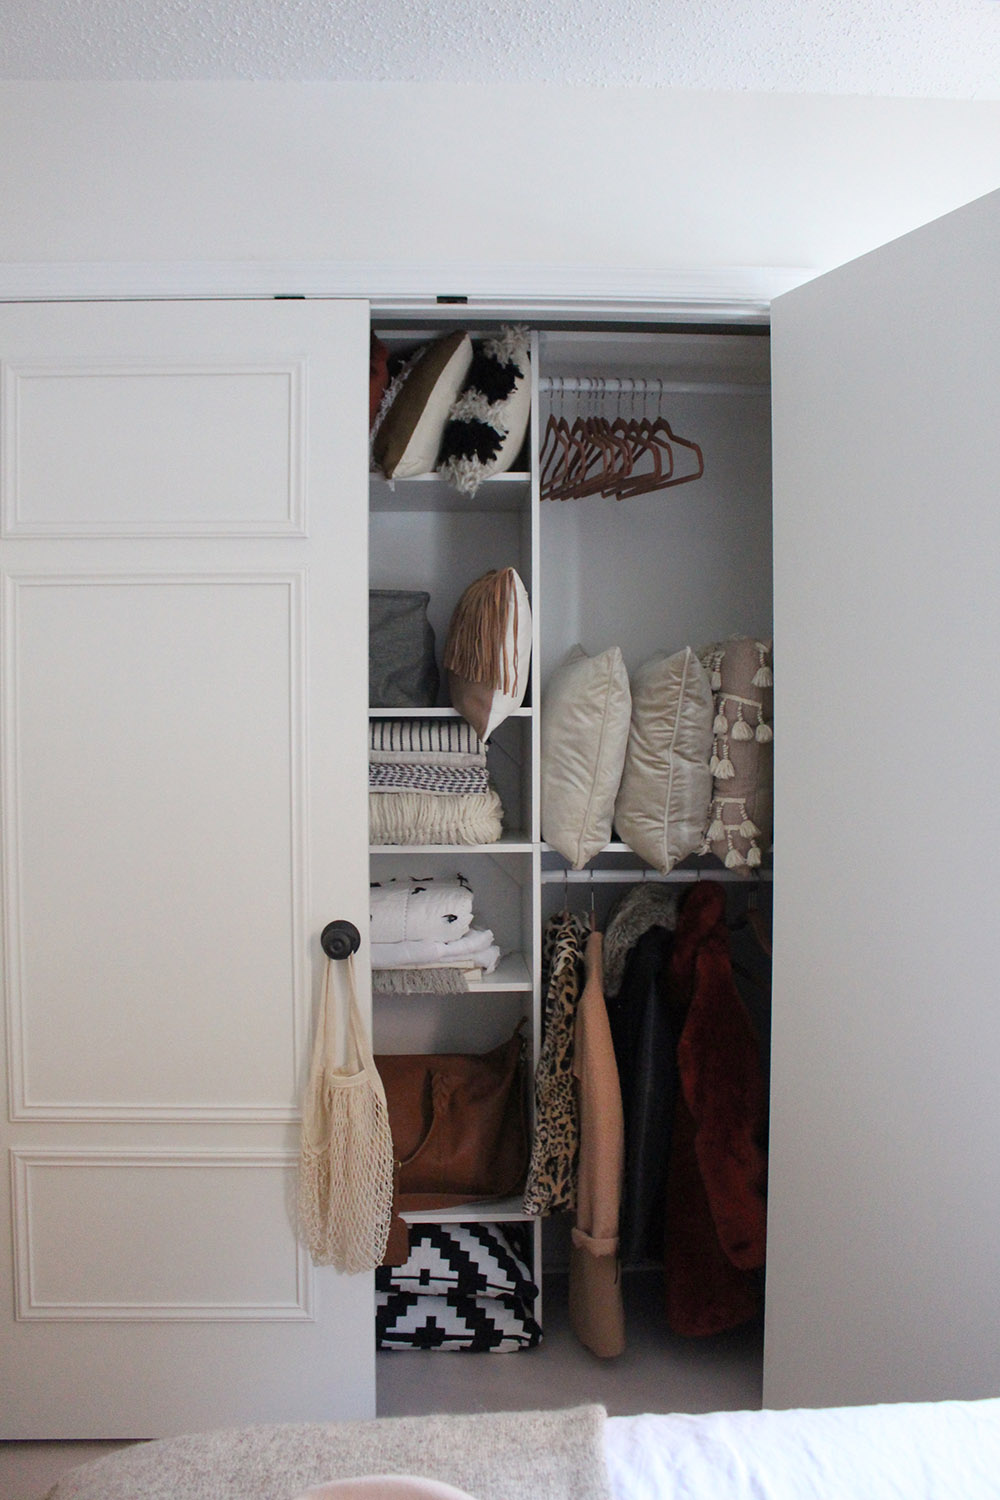 A closet with one door open shows organized wooden shelving.